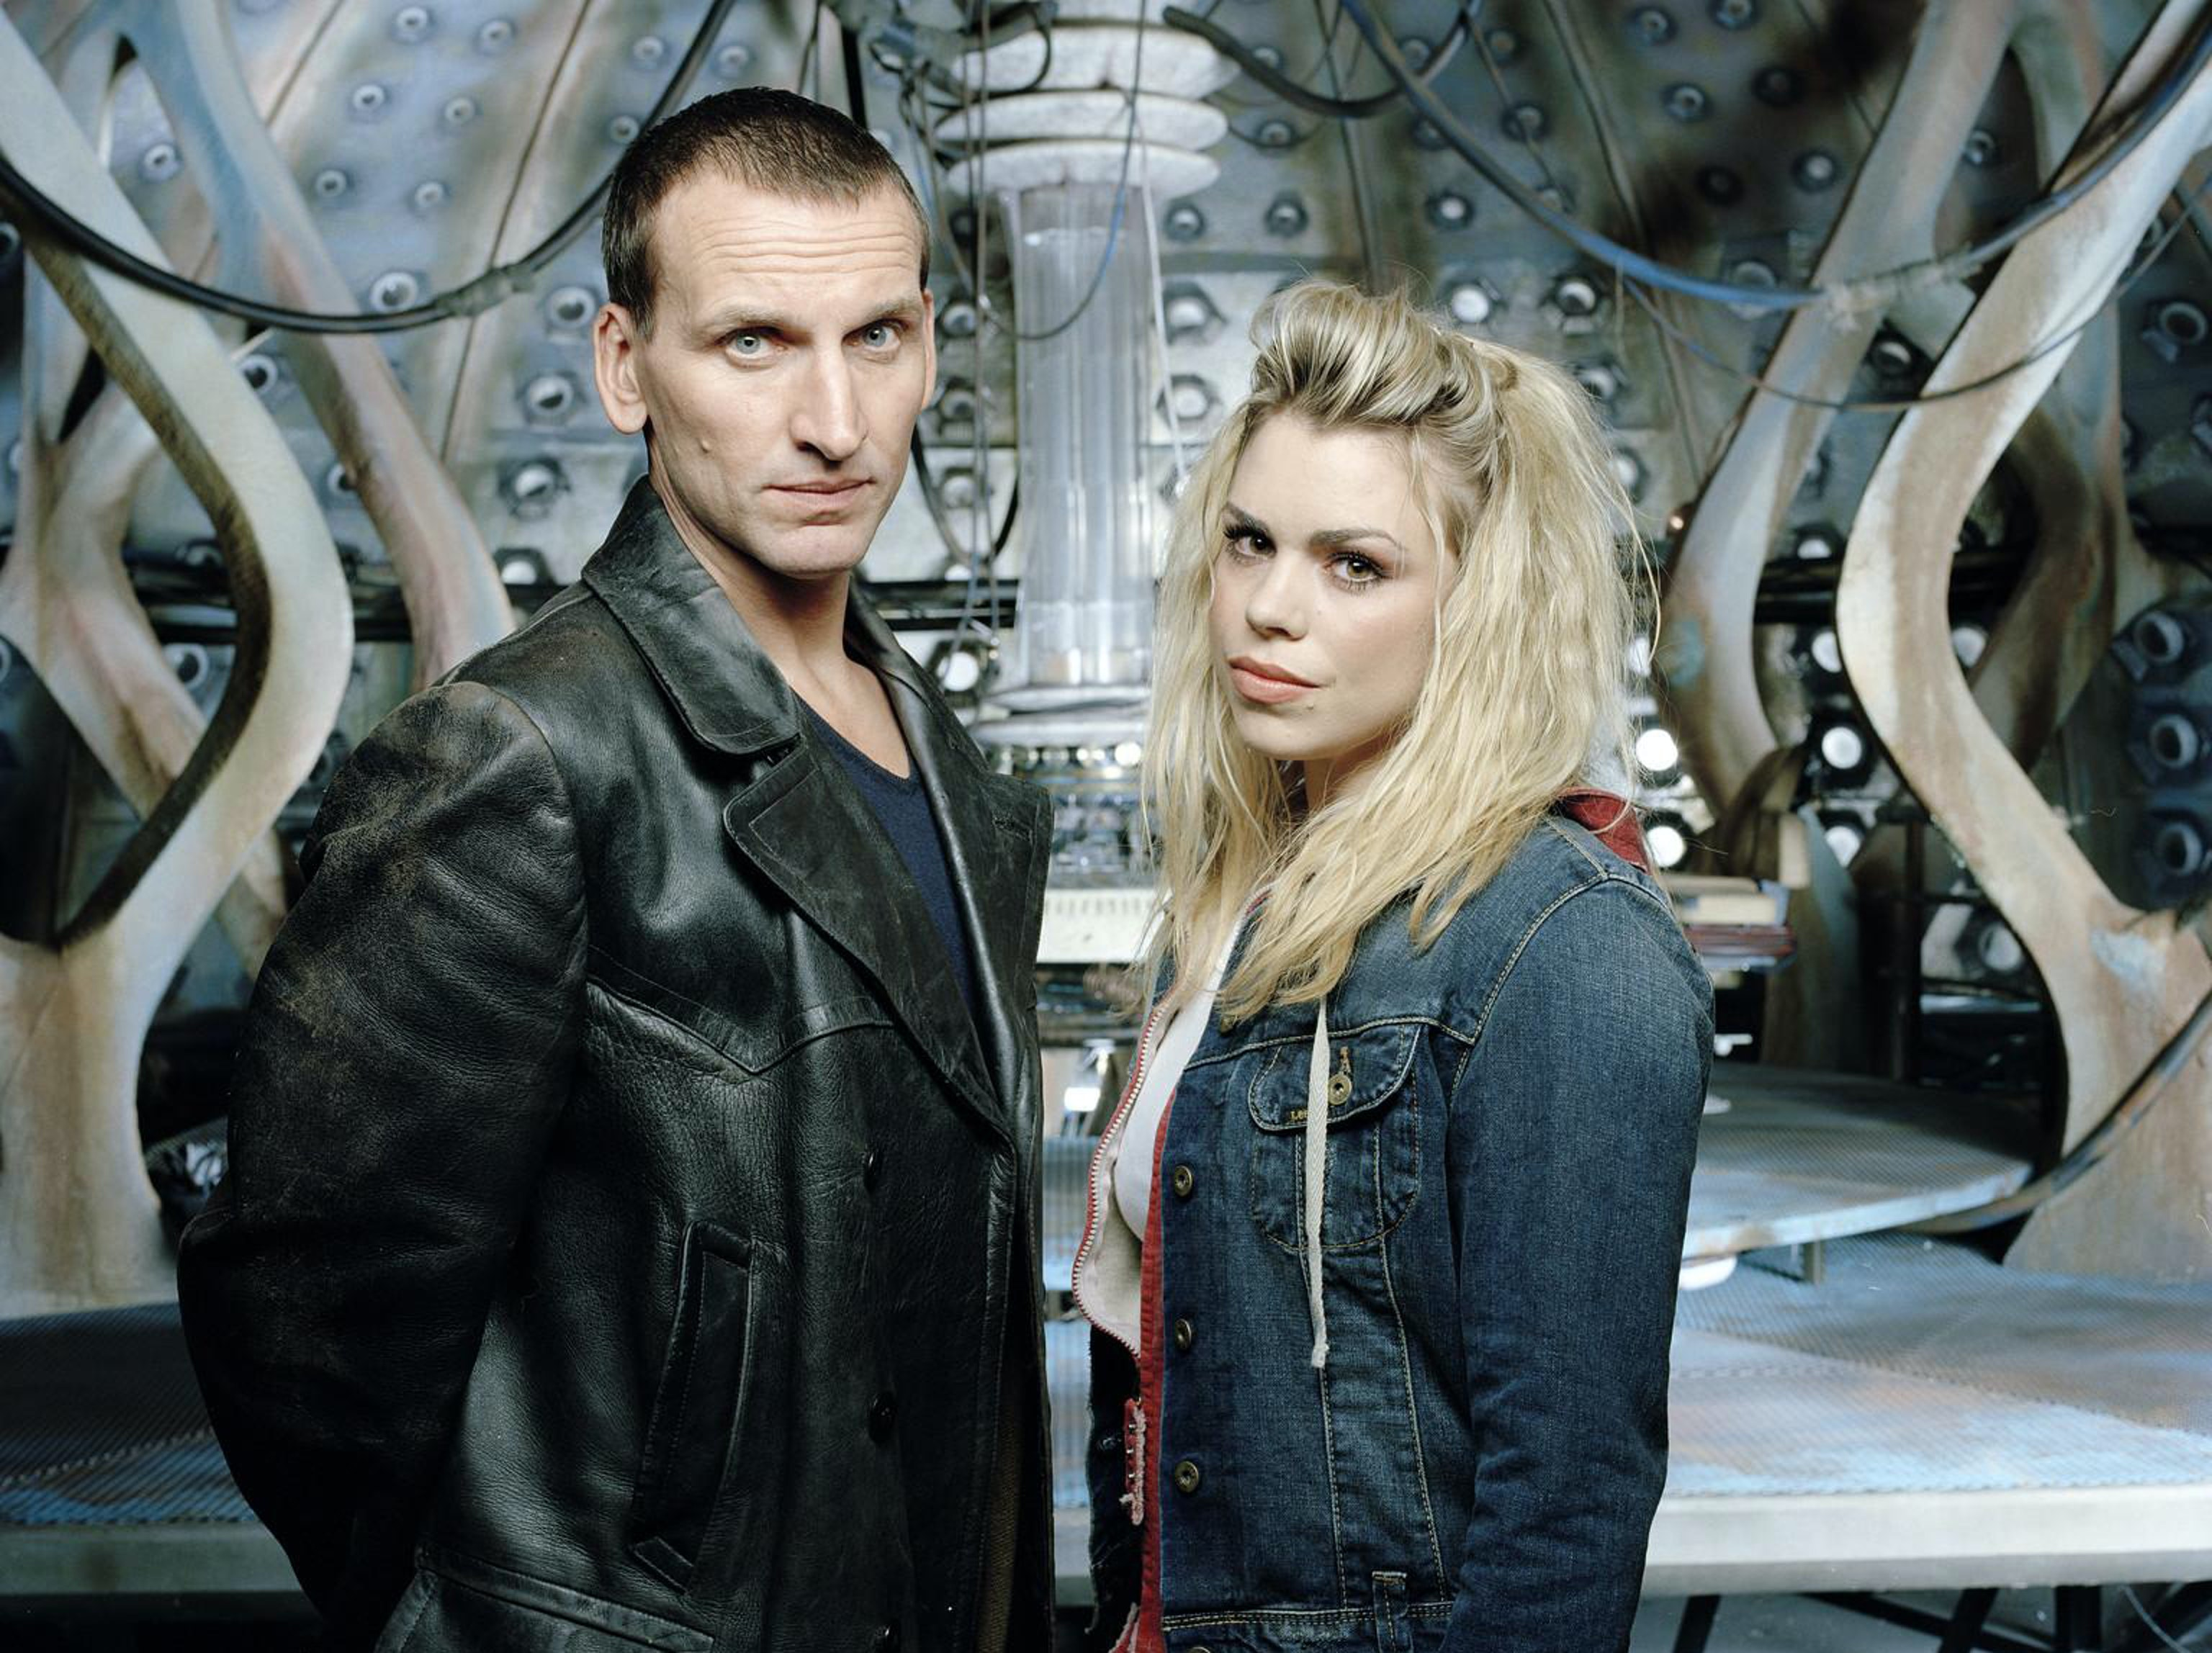 """Billie Piper as Rose in 'Doctor Who' back in 2005. The beginning of a different """"new"""" era."""